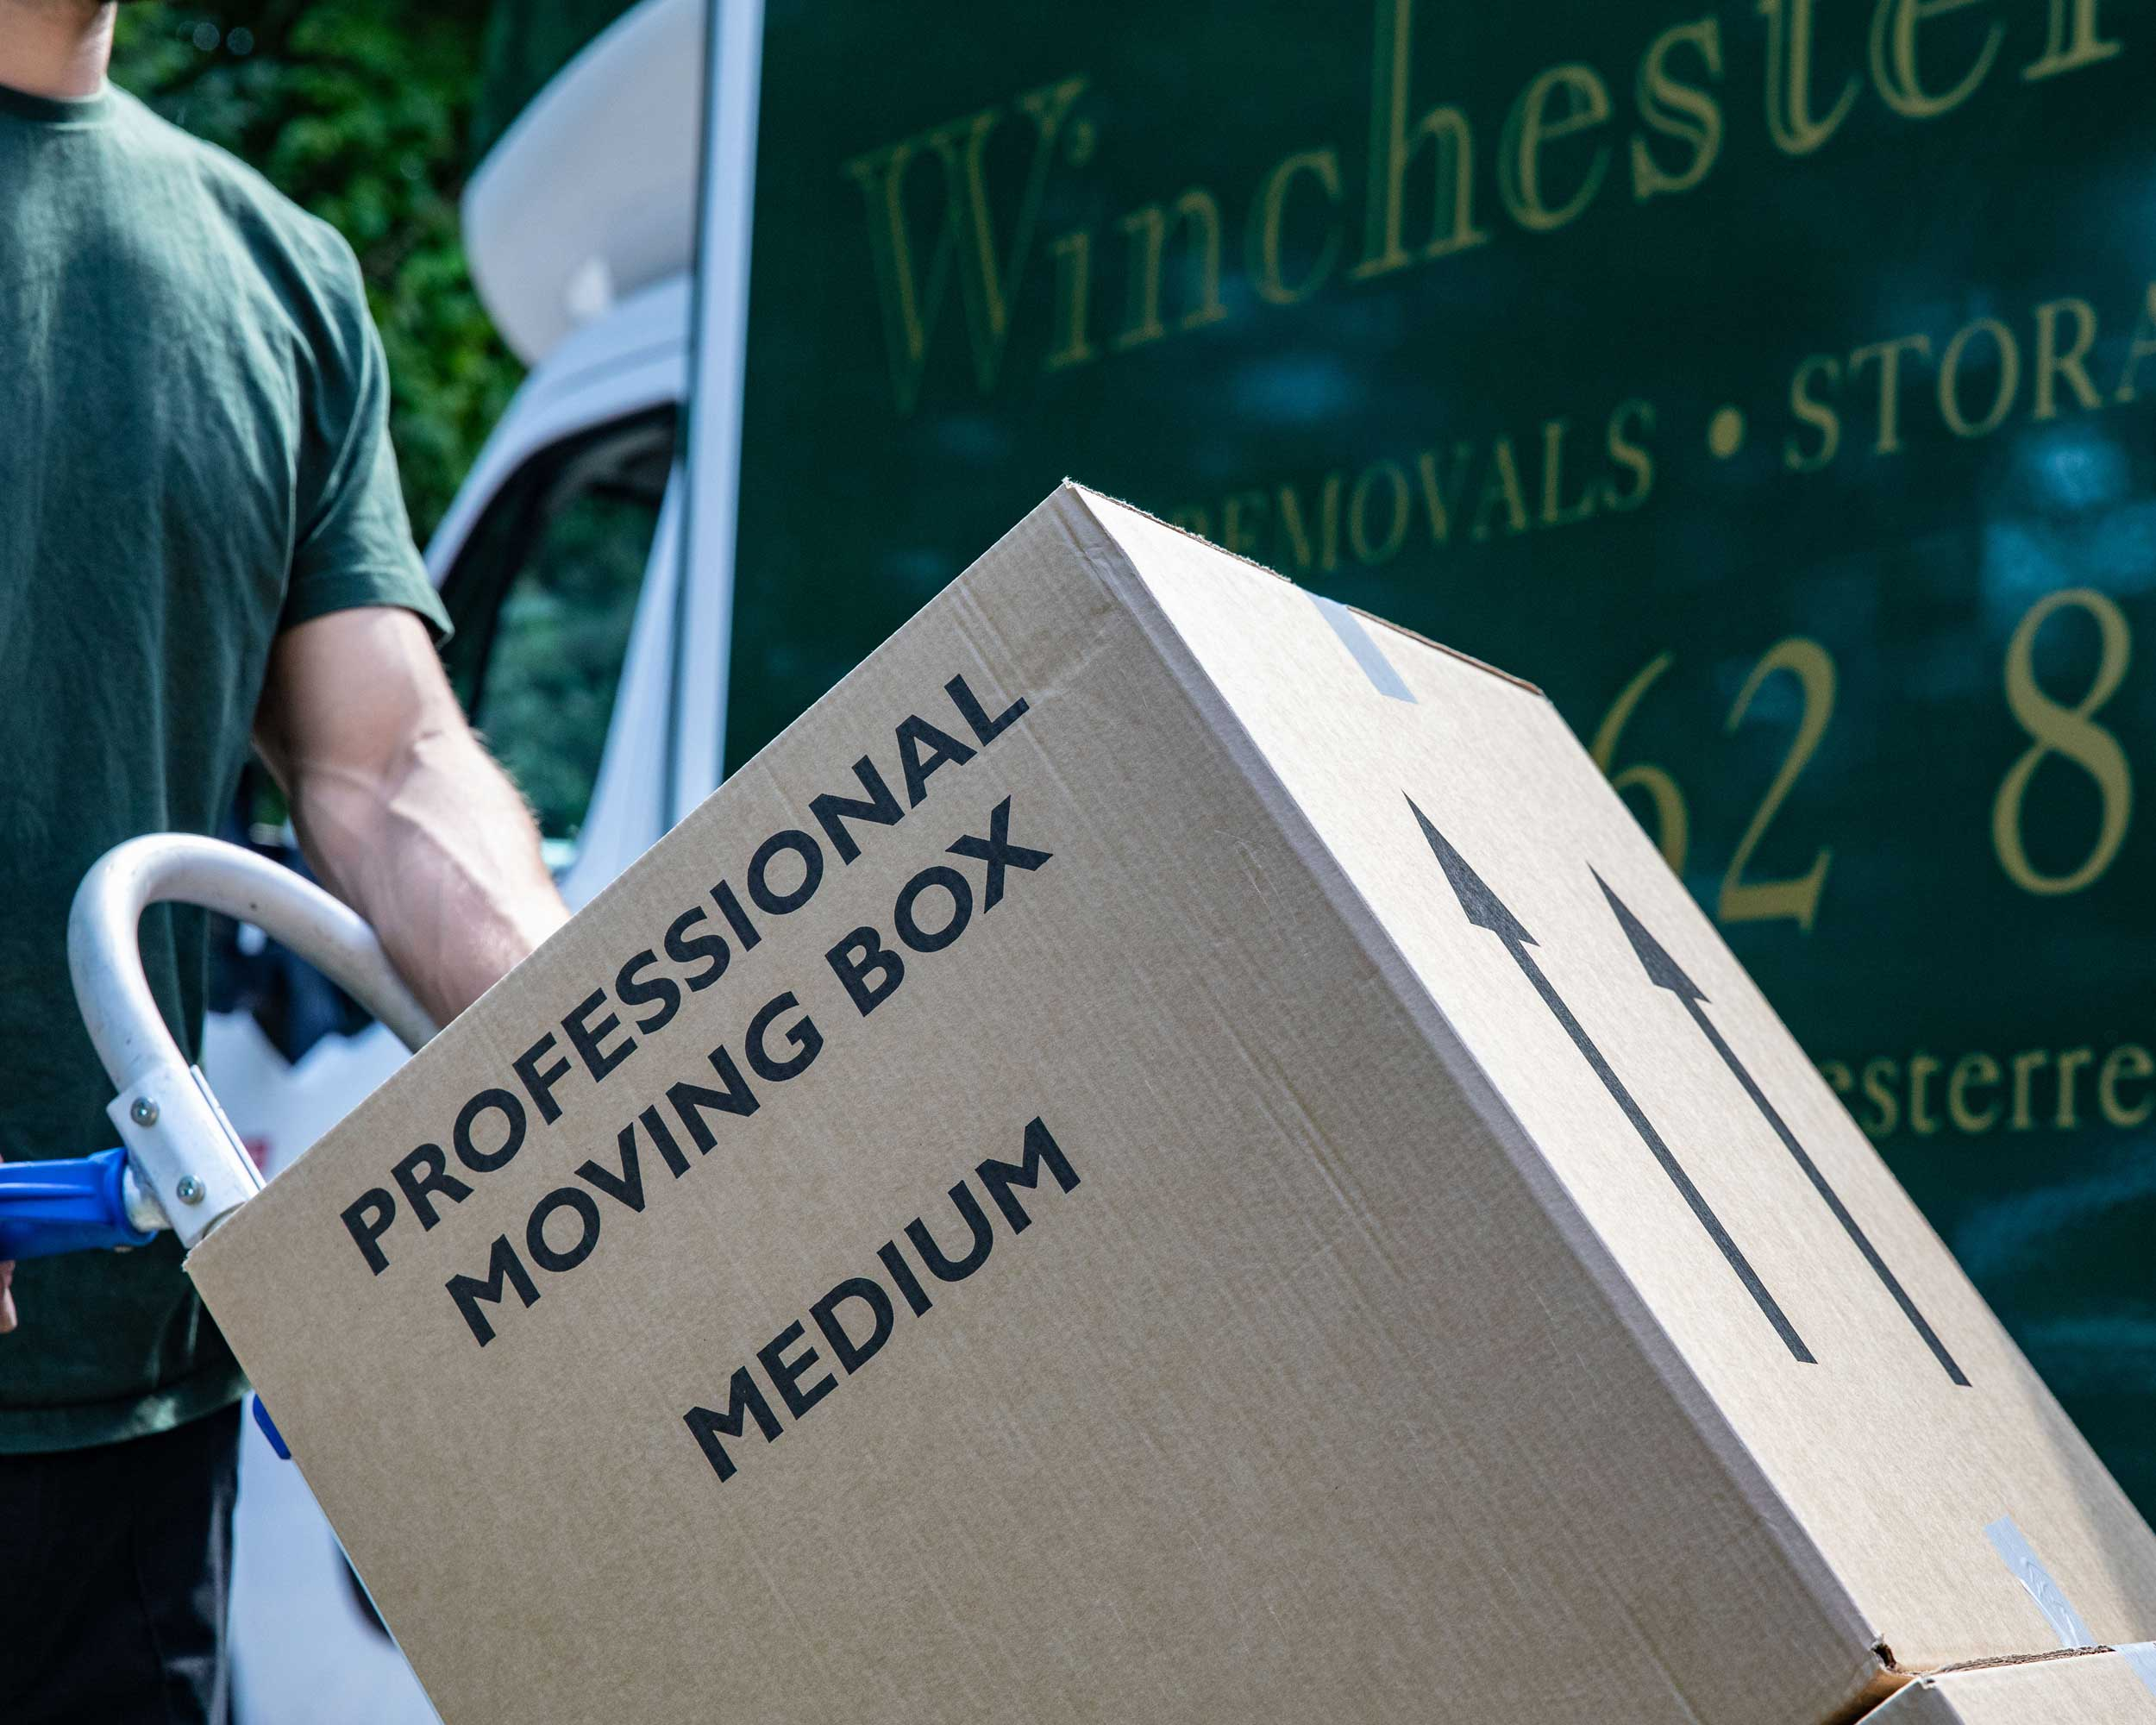 Latest Government advice for the public on buying, selling, renting and moving home